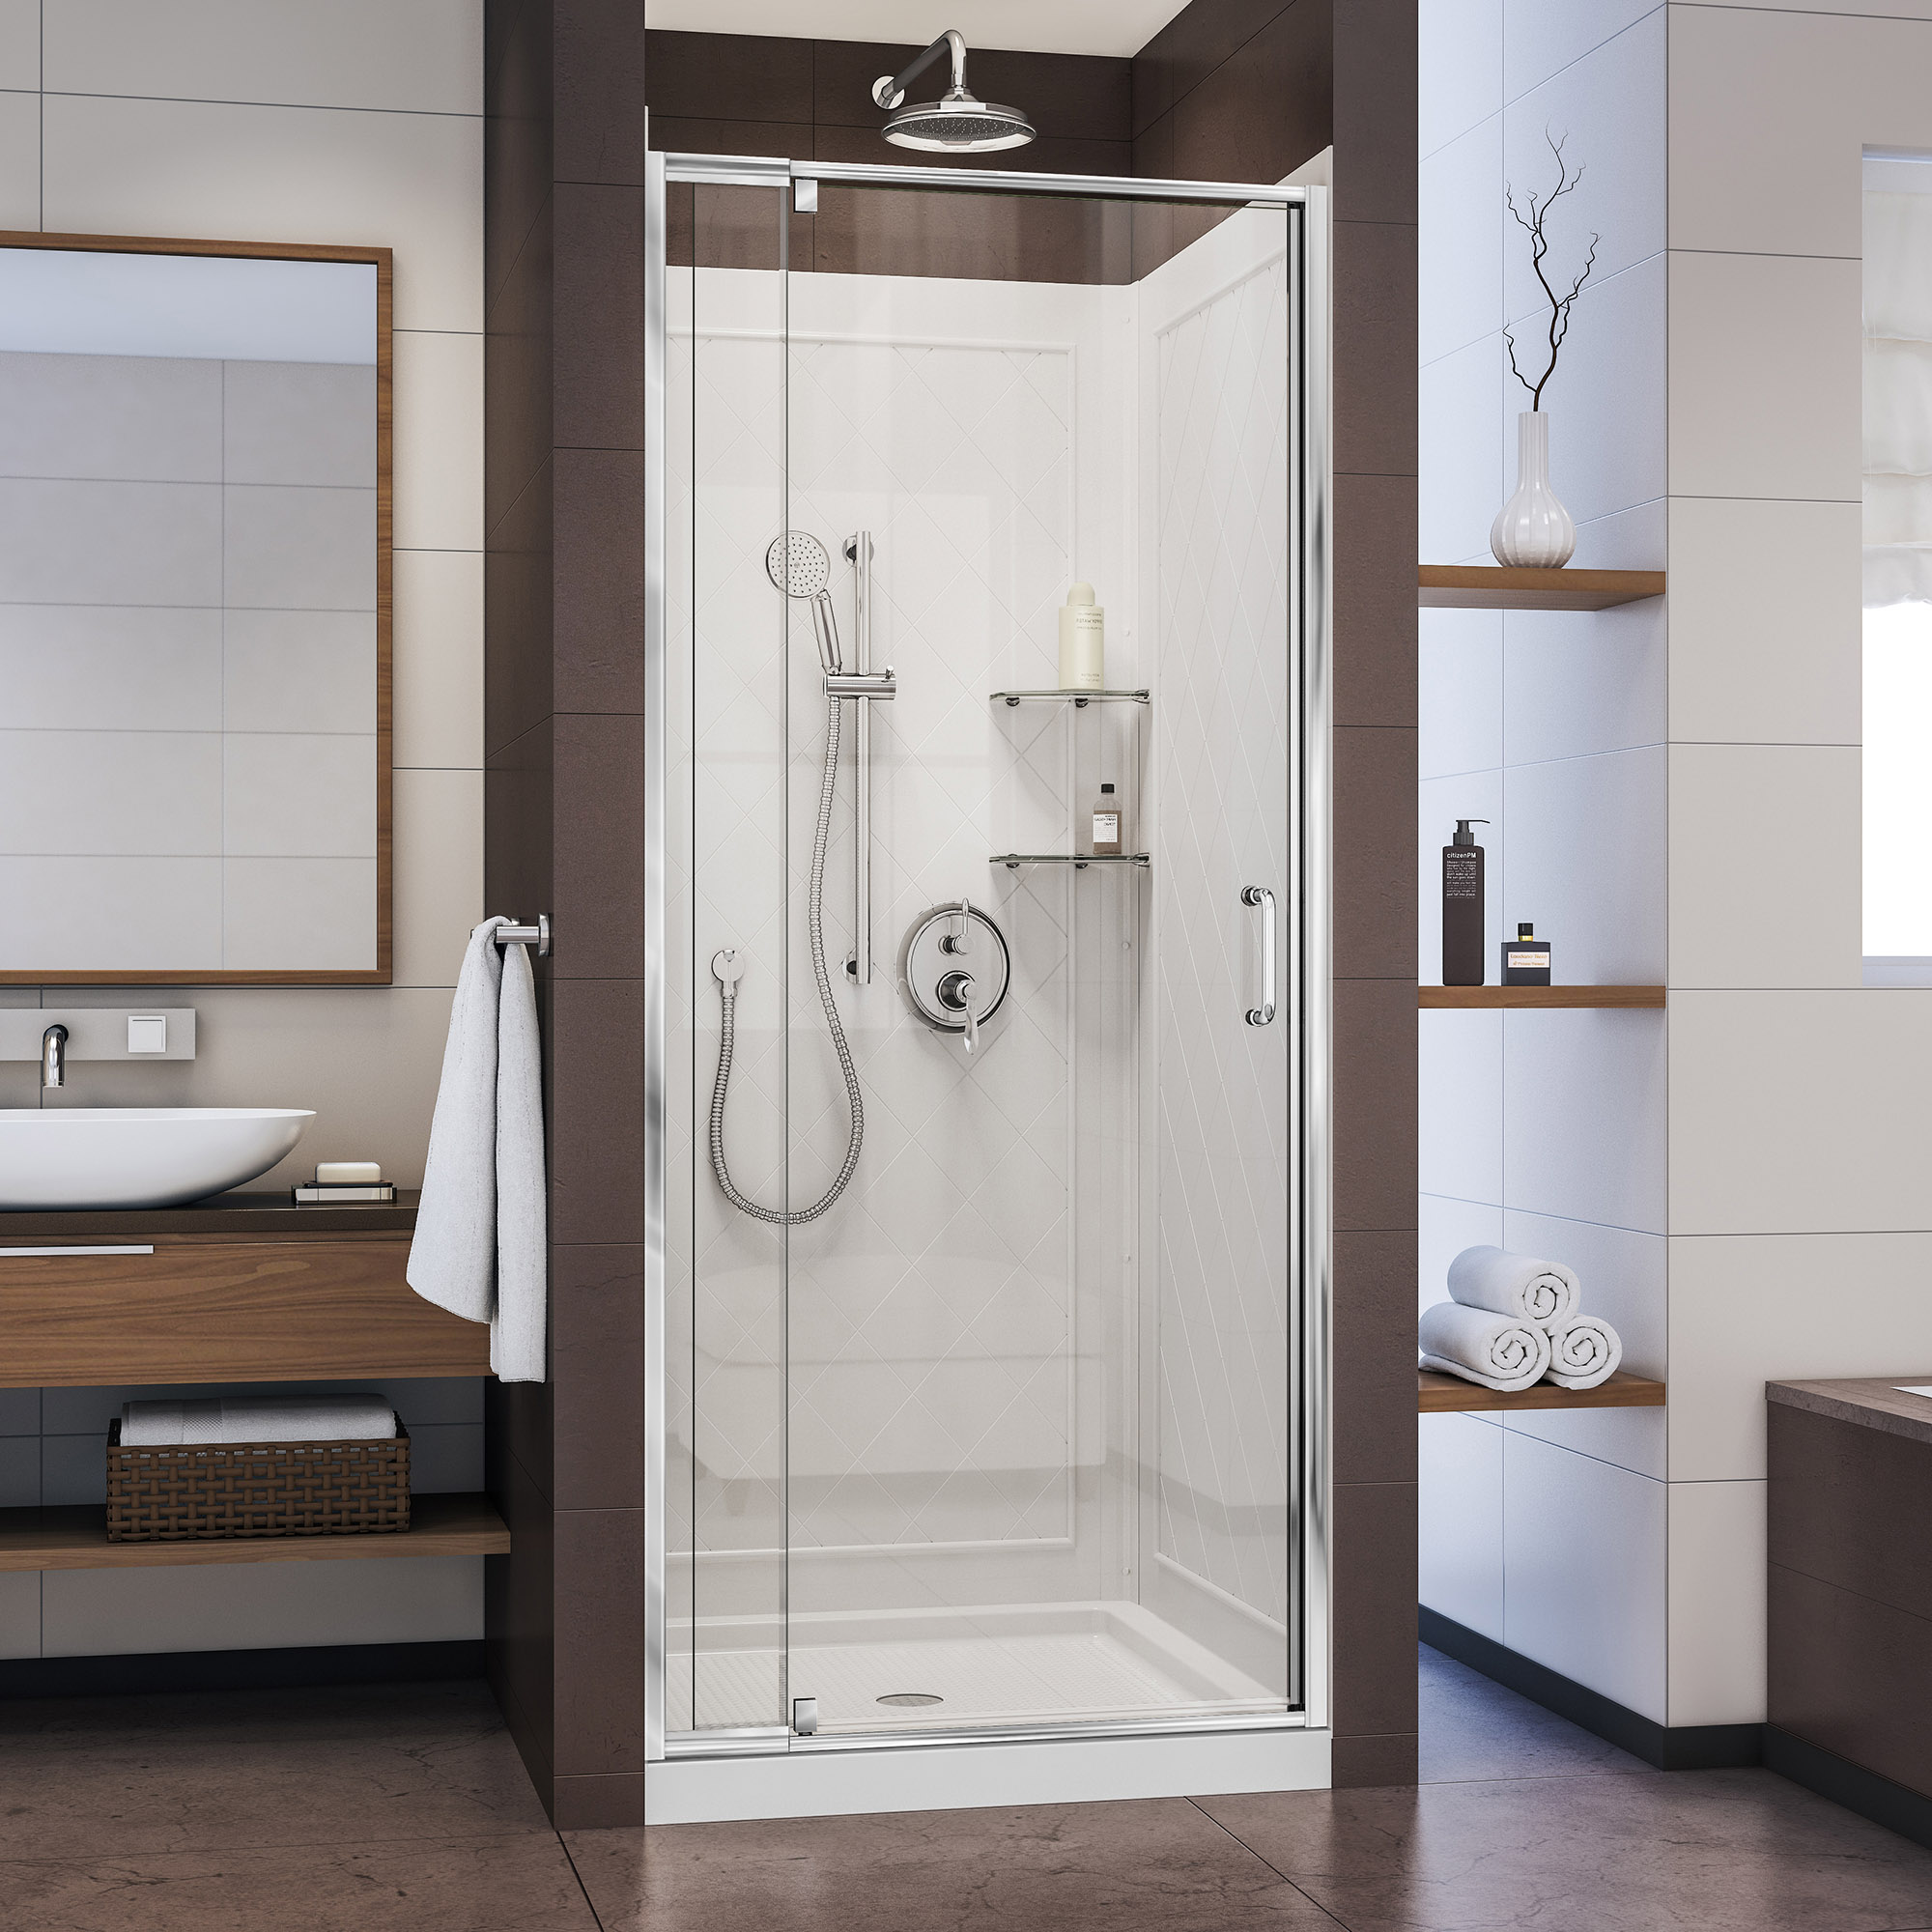 "Flex 36""W x 36""D x 74.75""H Frameless Shower Door and Base Kit, Chrome Finish Hardware"